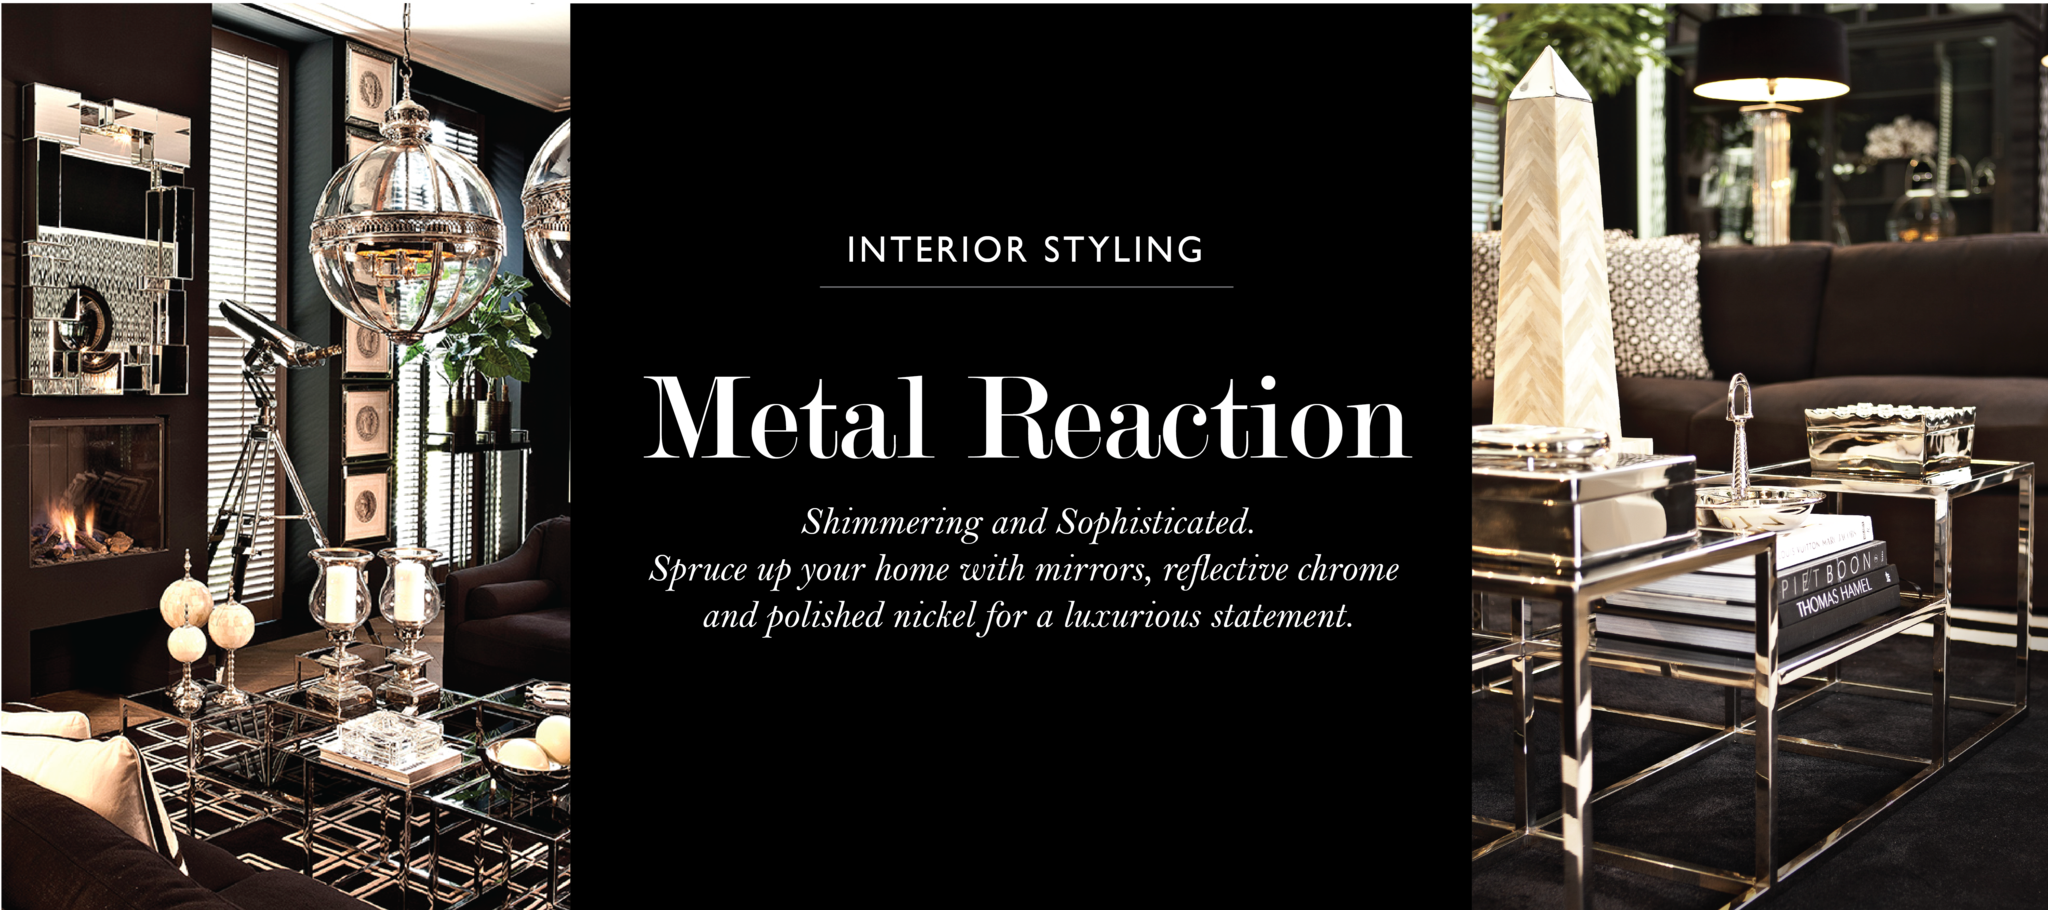 Metal Reaction